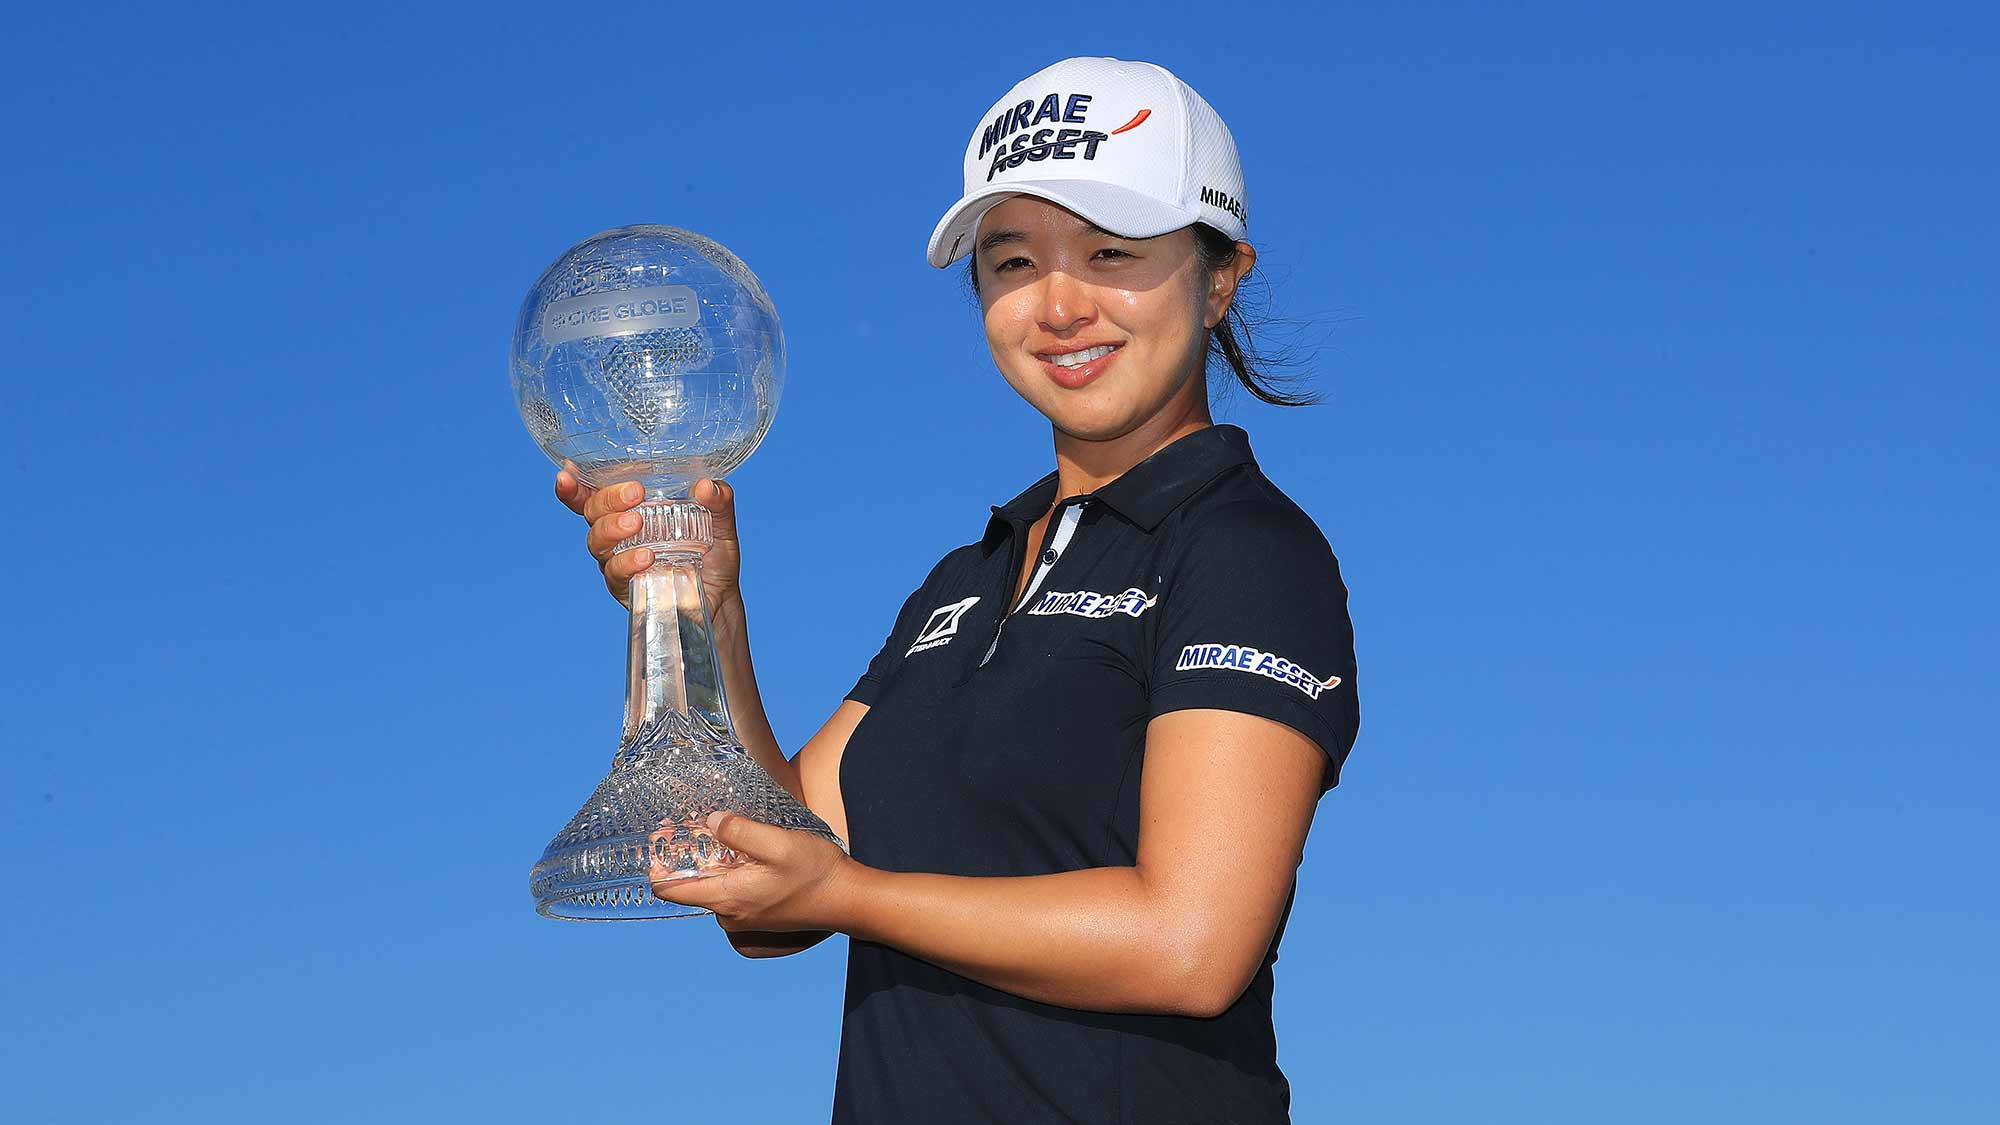 Sei Young Kim of South Korea poses with the trophy after winning the CME Group Tour Championship at Tiburon Golf Club on November 24, 2019 in Naples, Florida